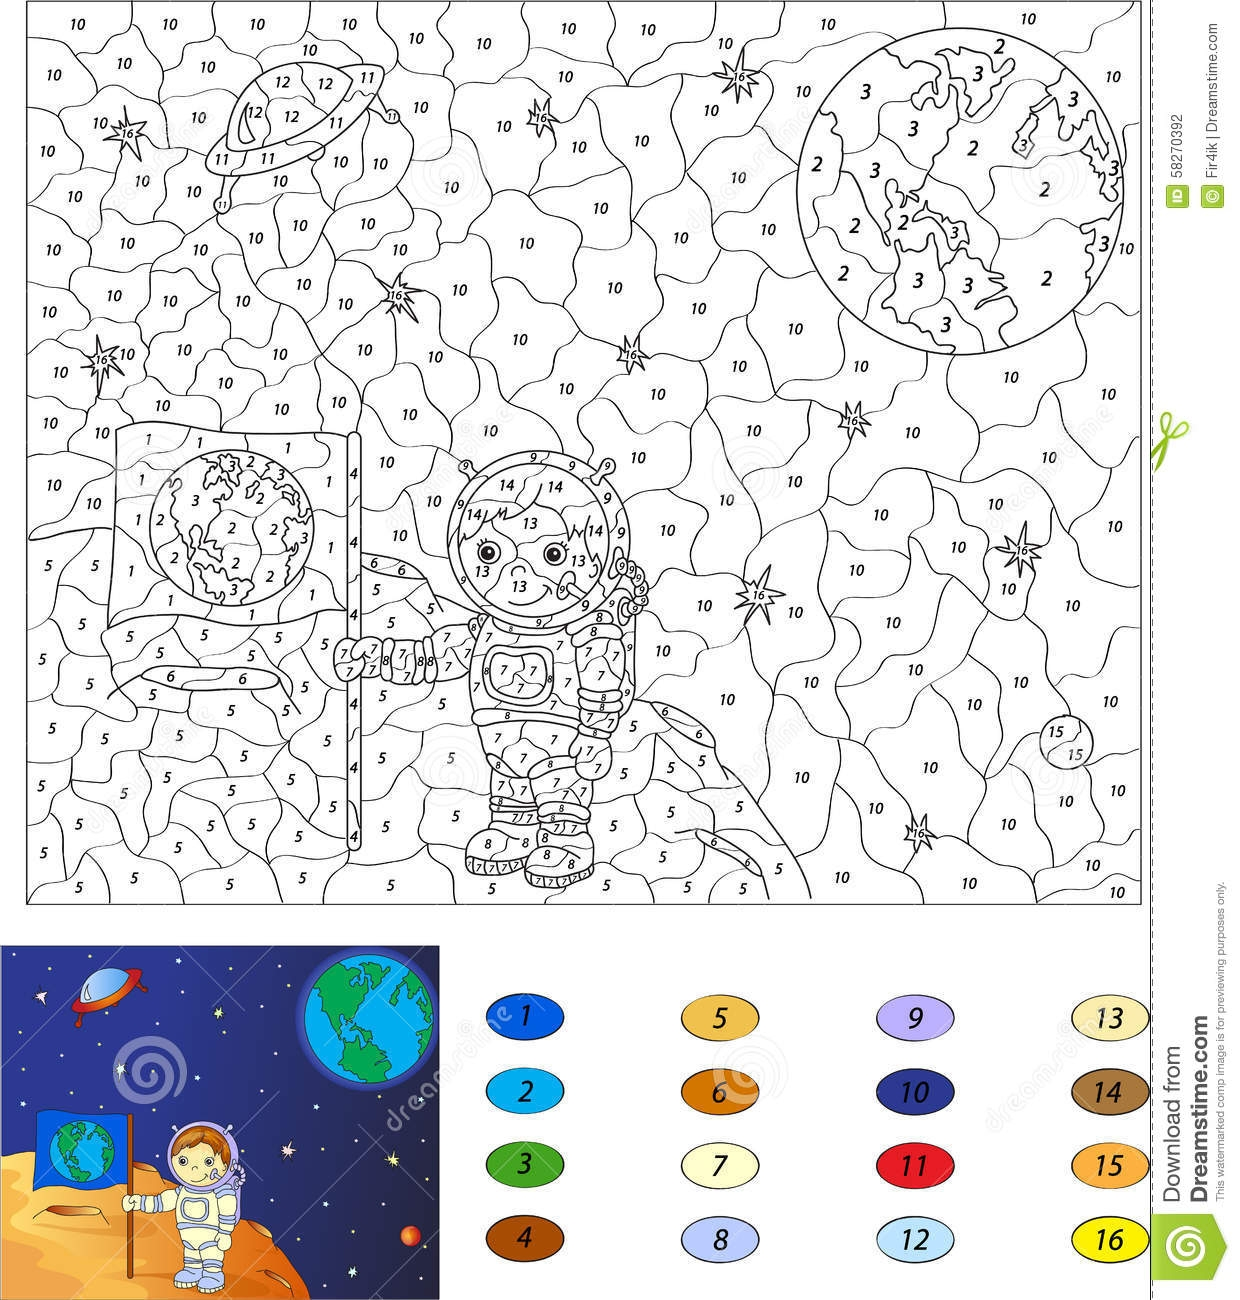 mars coloring pages - stock illustration color number educational game kids astronaut flag earth moon vector illustration schoolchild image